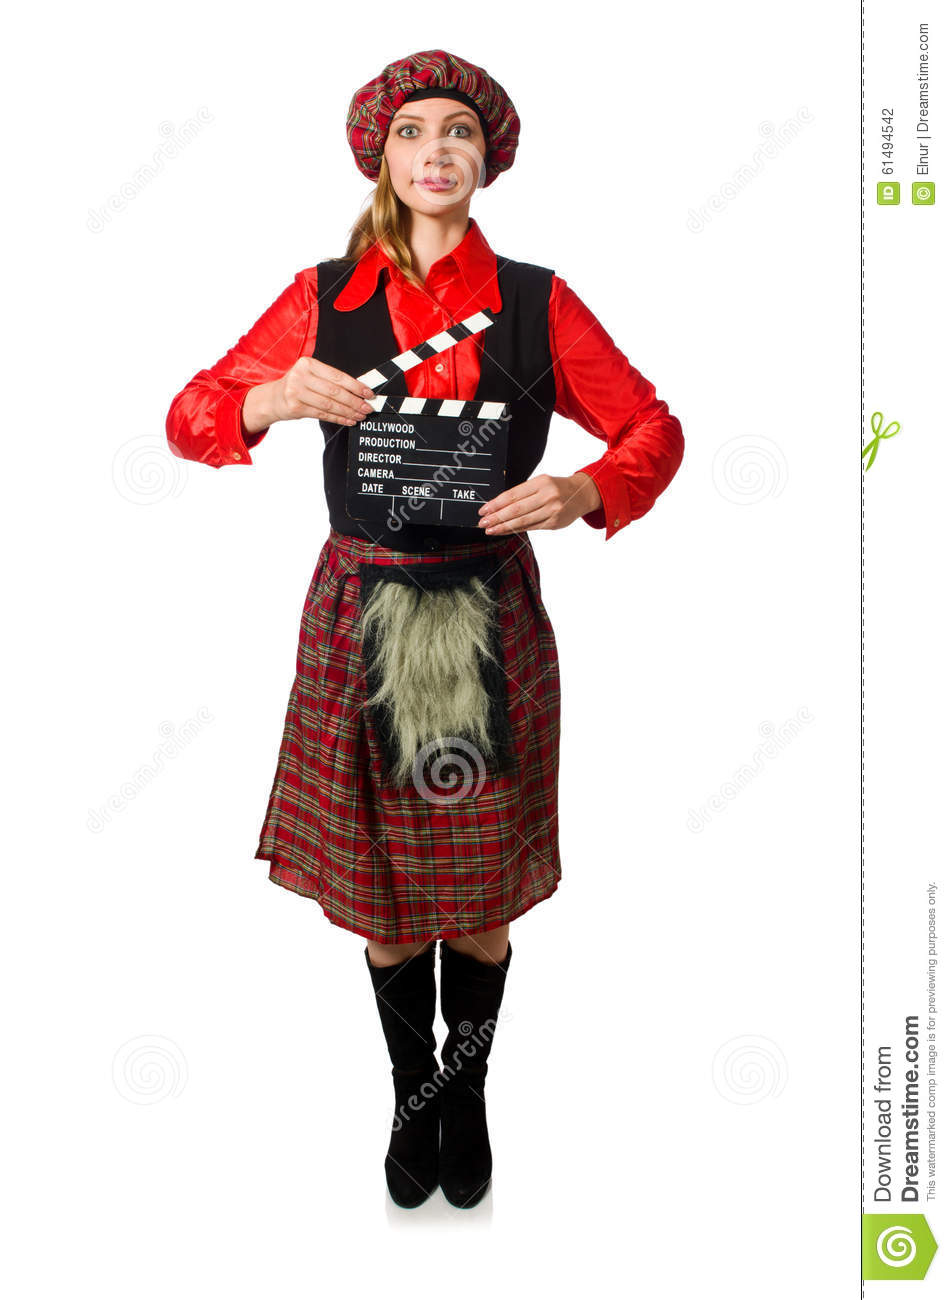 Download comp  sc 1 st  Dreamstime.com & The Funny Woman In Scottish Clothing With Movie Stock Photo - Image ...